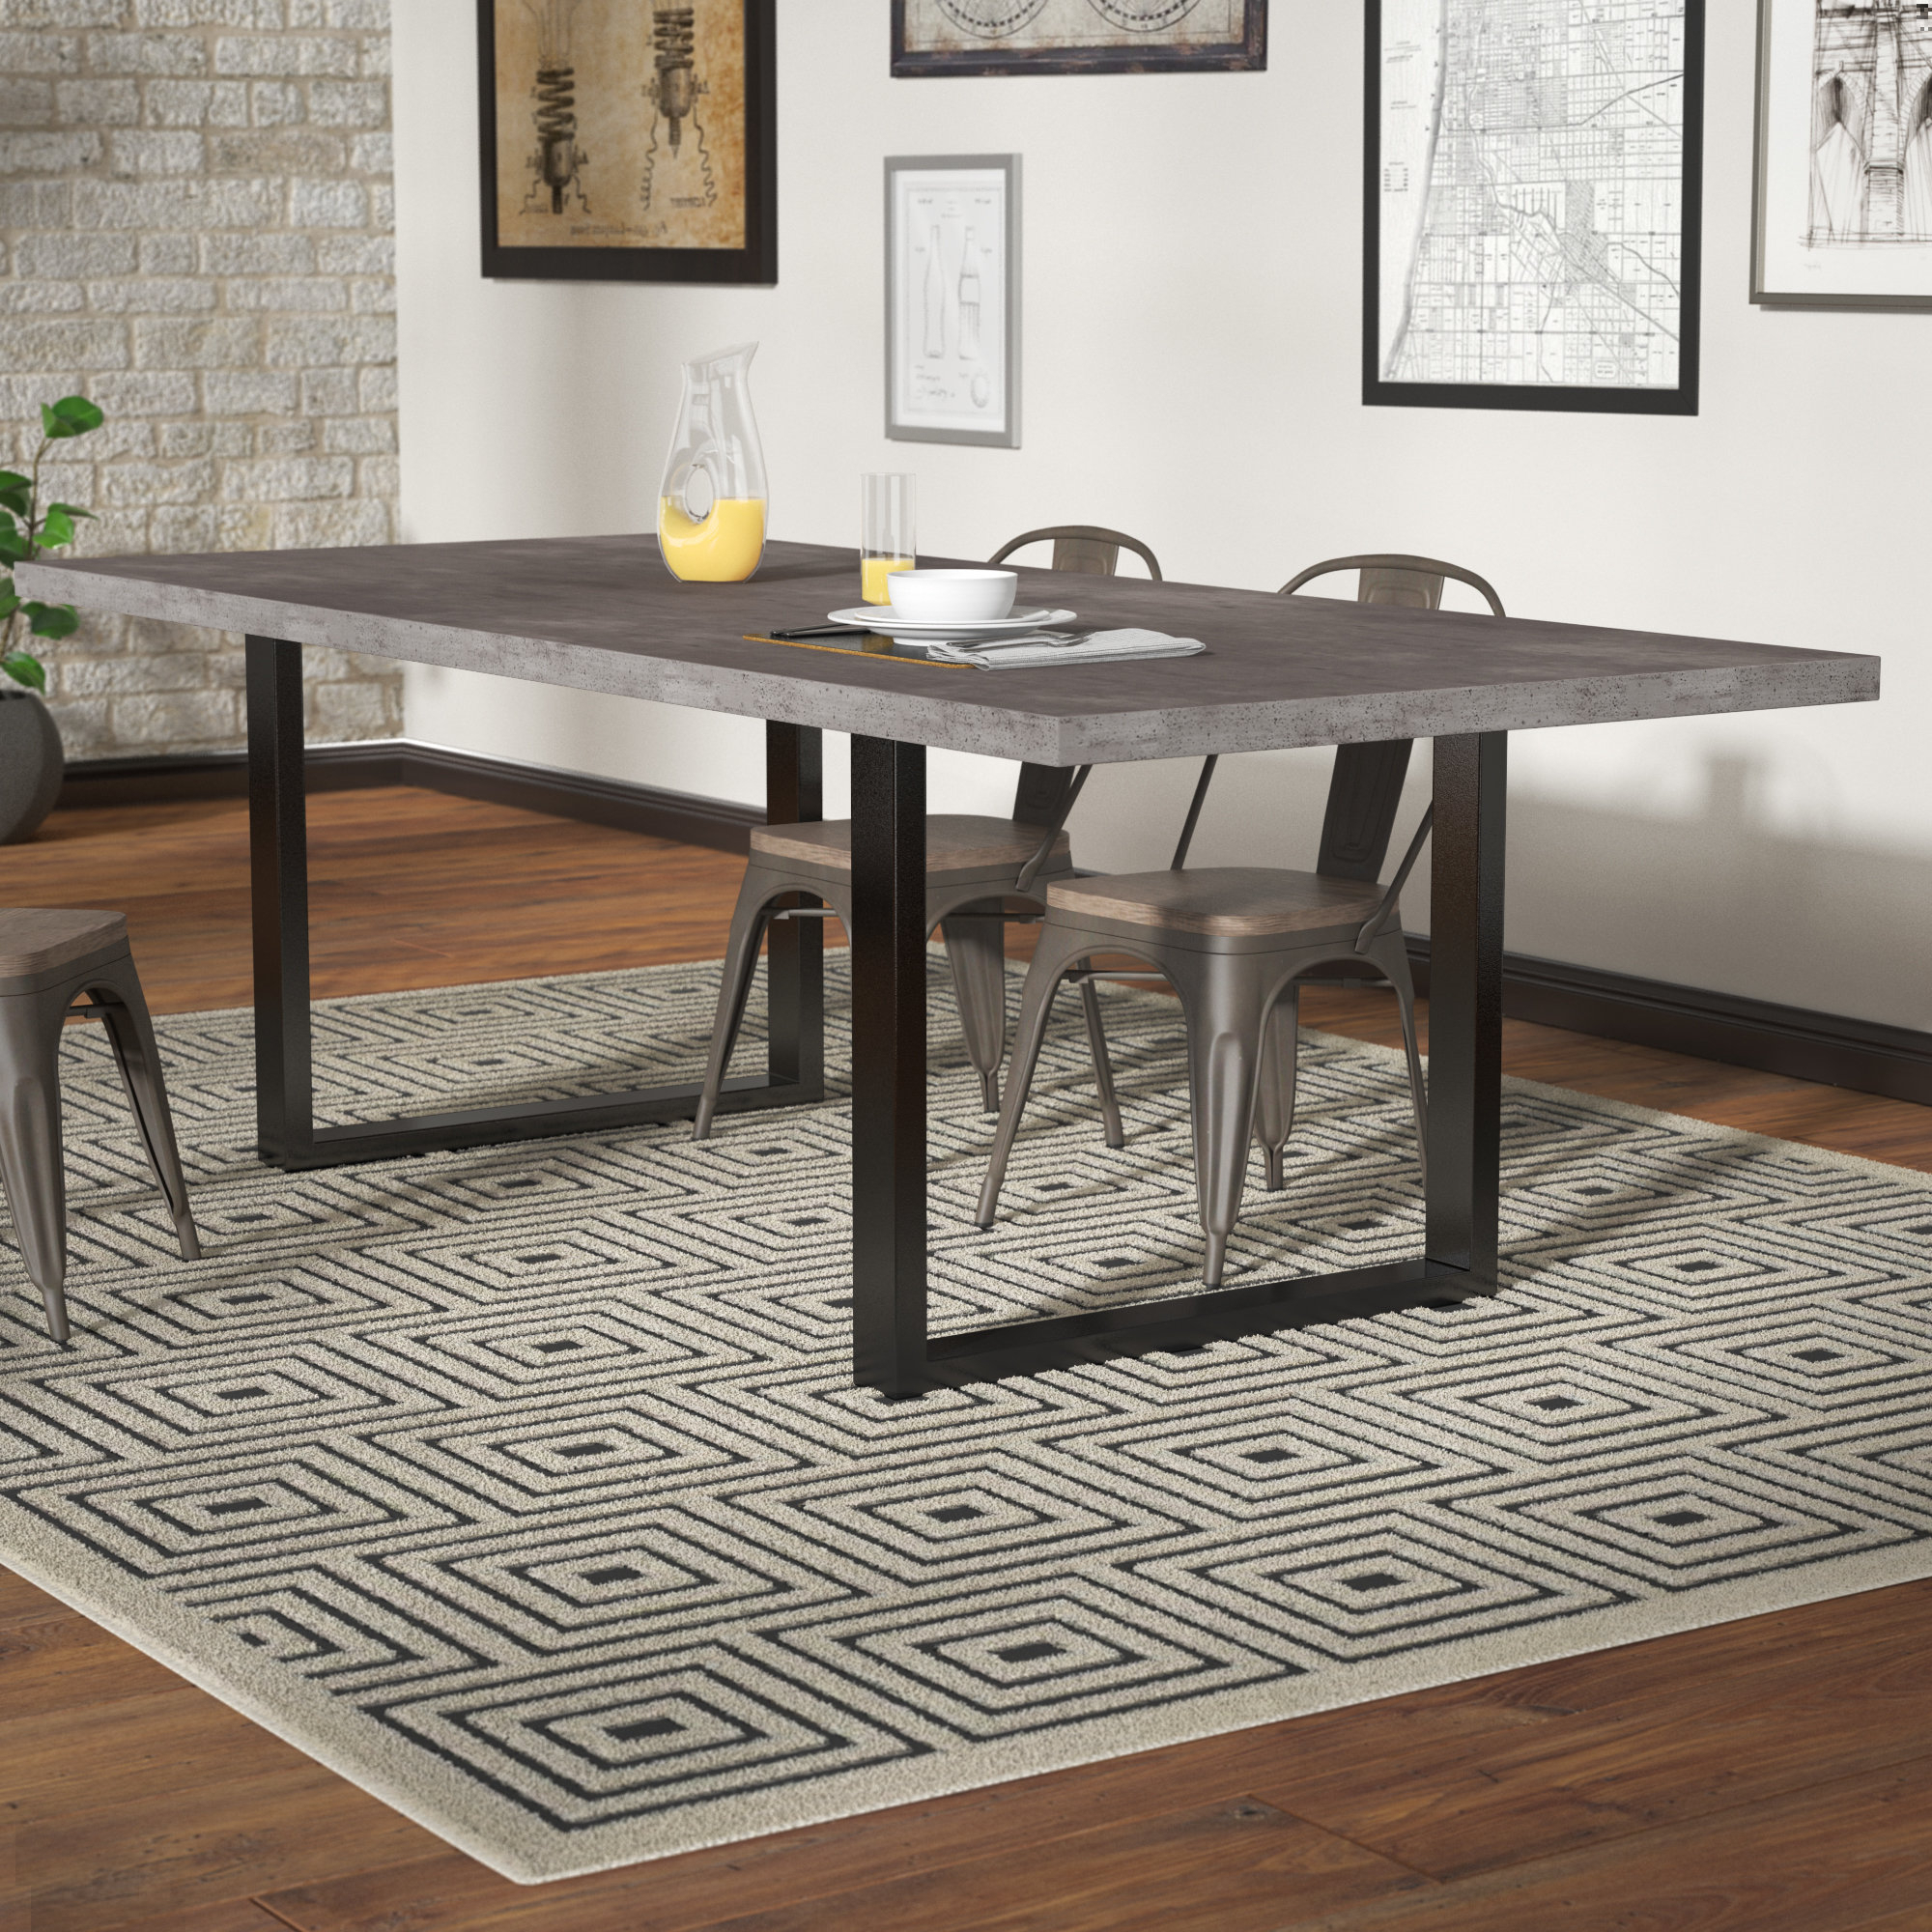 Famous Rossi 5 Piece Dining Sets In Trent Austin Design Carnarvon Concrete Dining Table & Reviews (View 6 of 25)